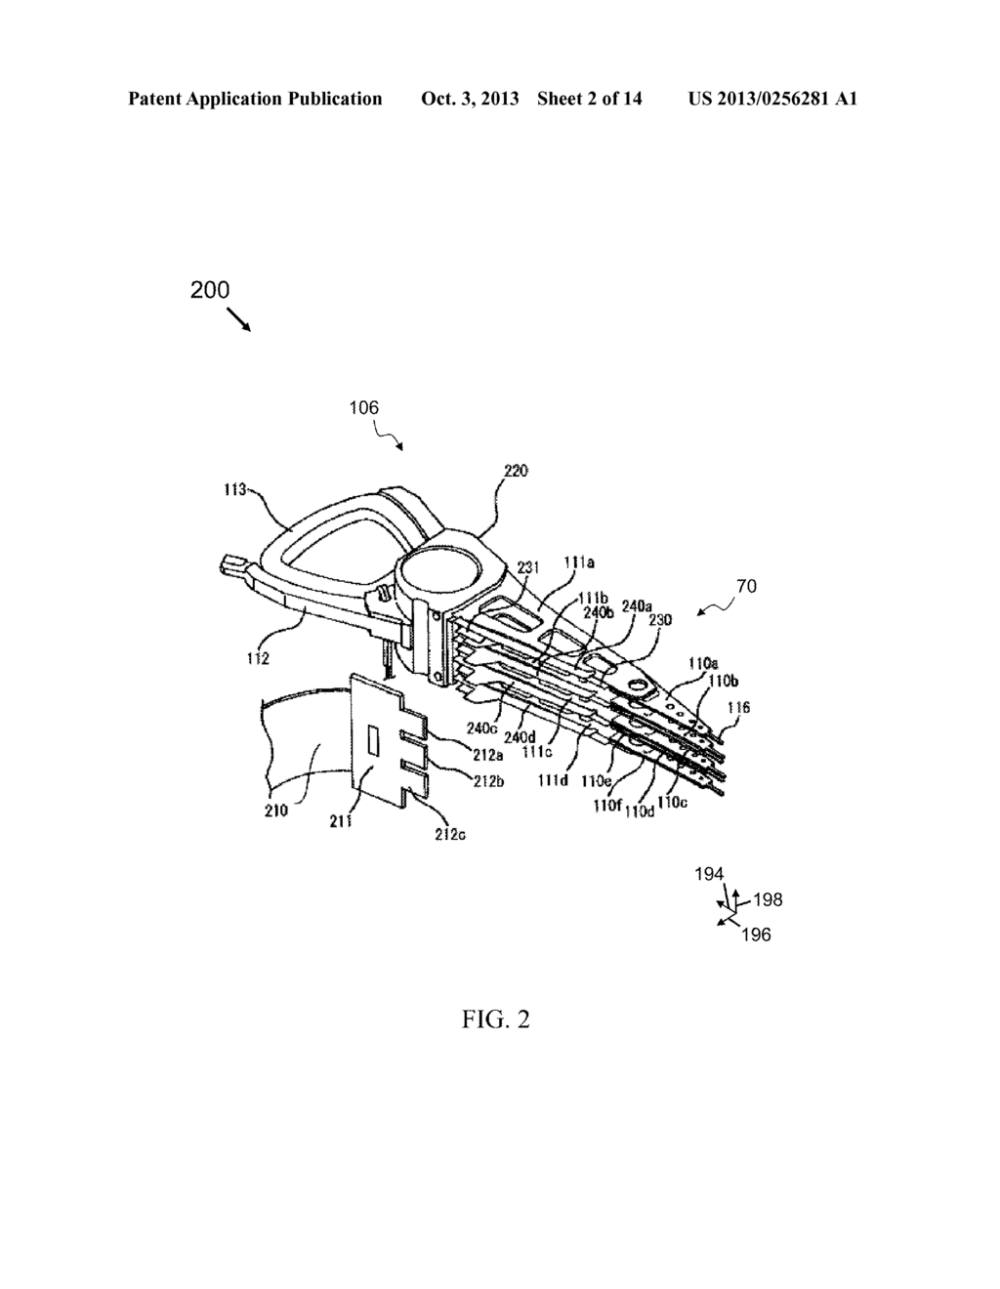 medium resolution of solder jet nozzle laser soldering tool and method for lasersoldering head connection pads of a head stack assembly for a hard disk drive diagram